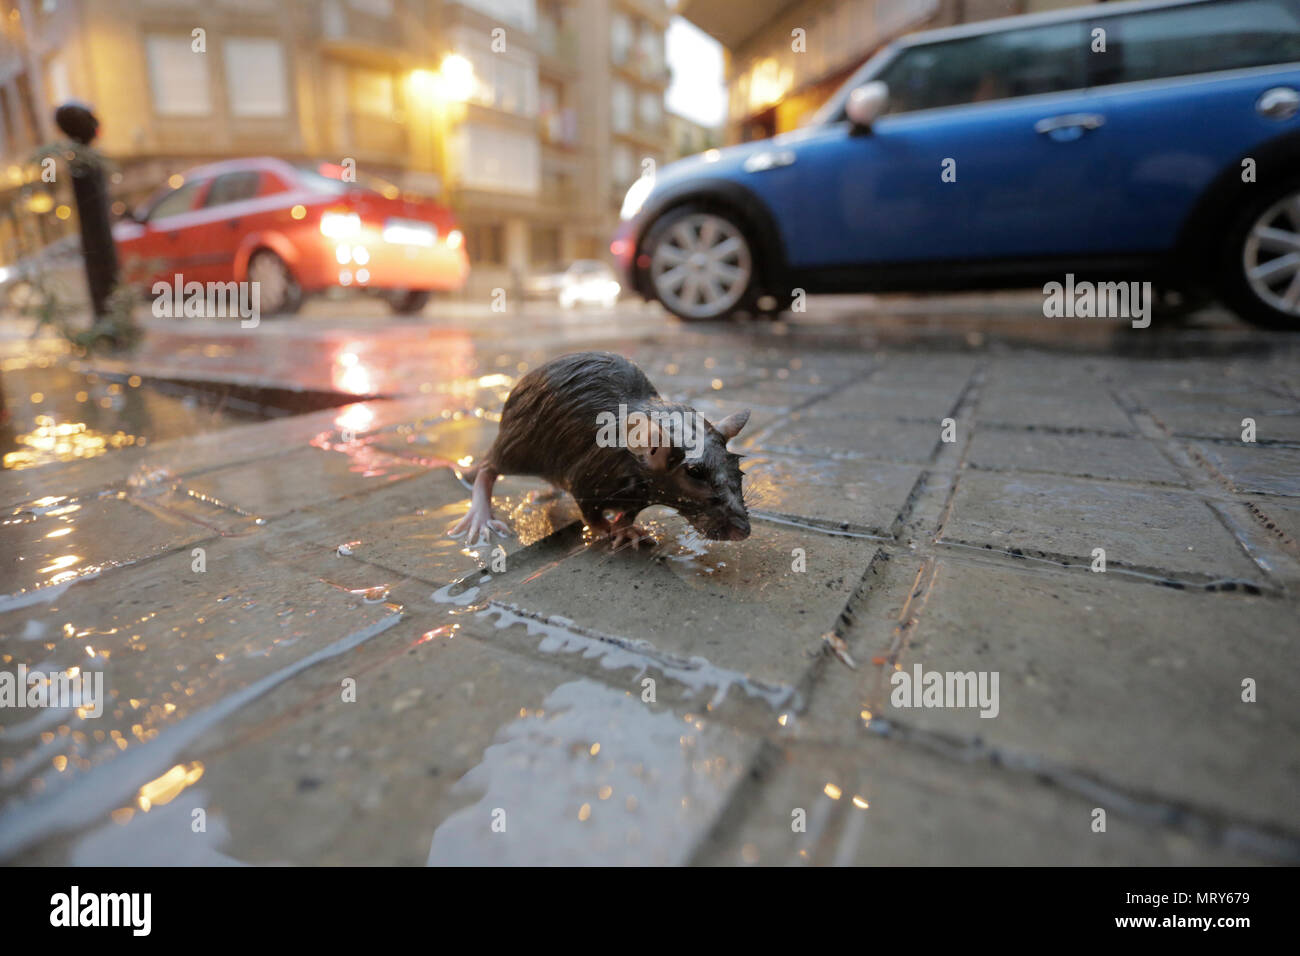 A rat comes out wet to the street after a heavy storm - Stock Image